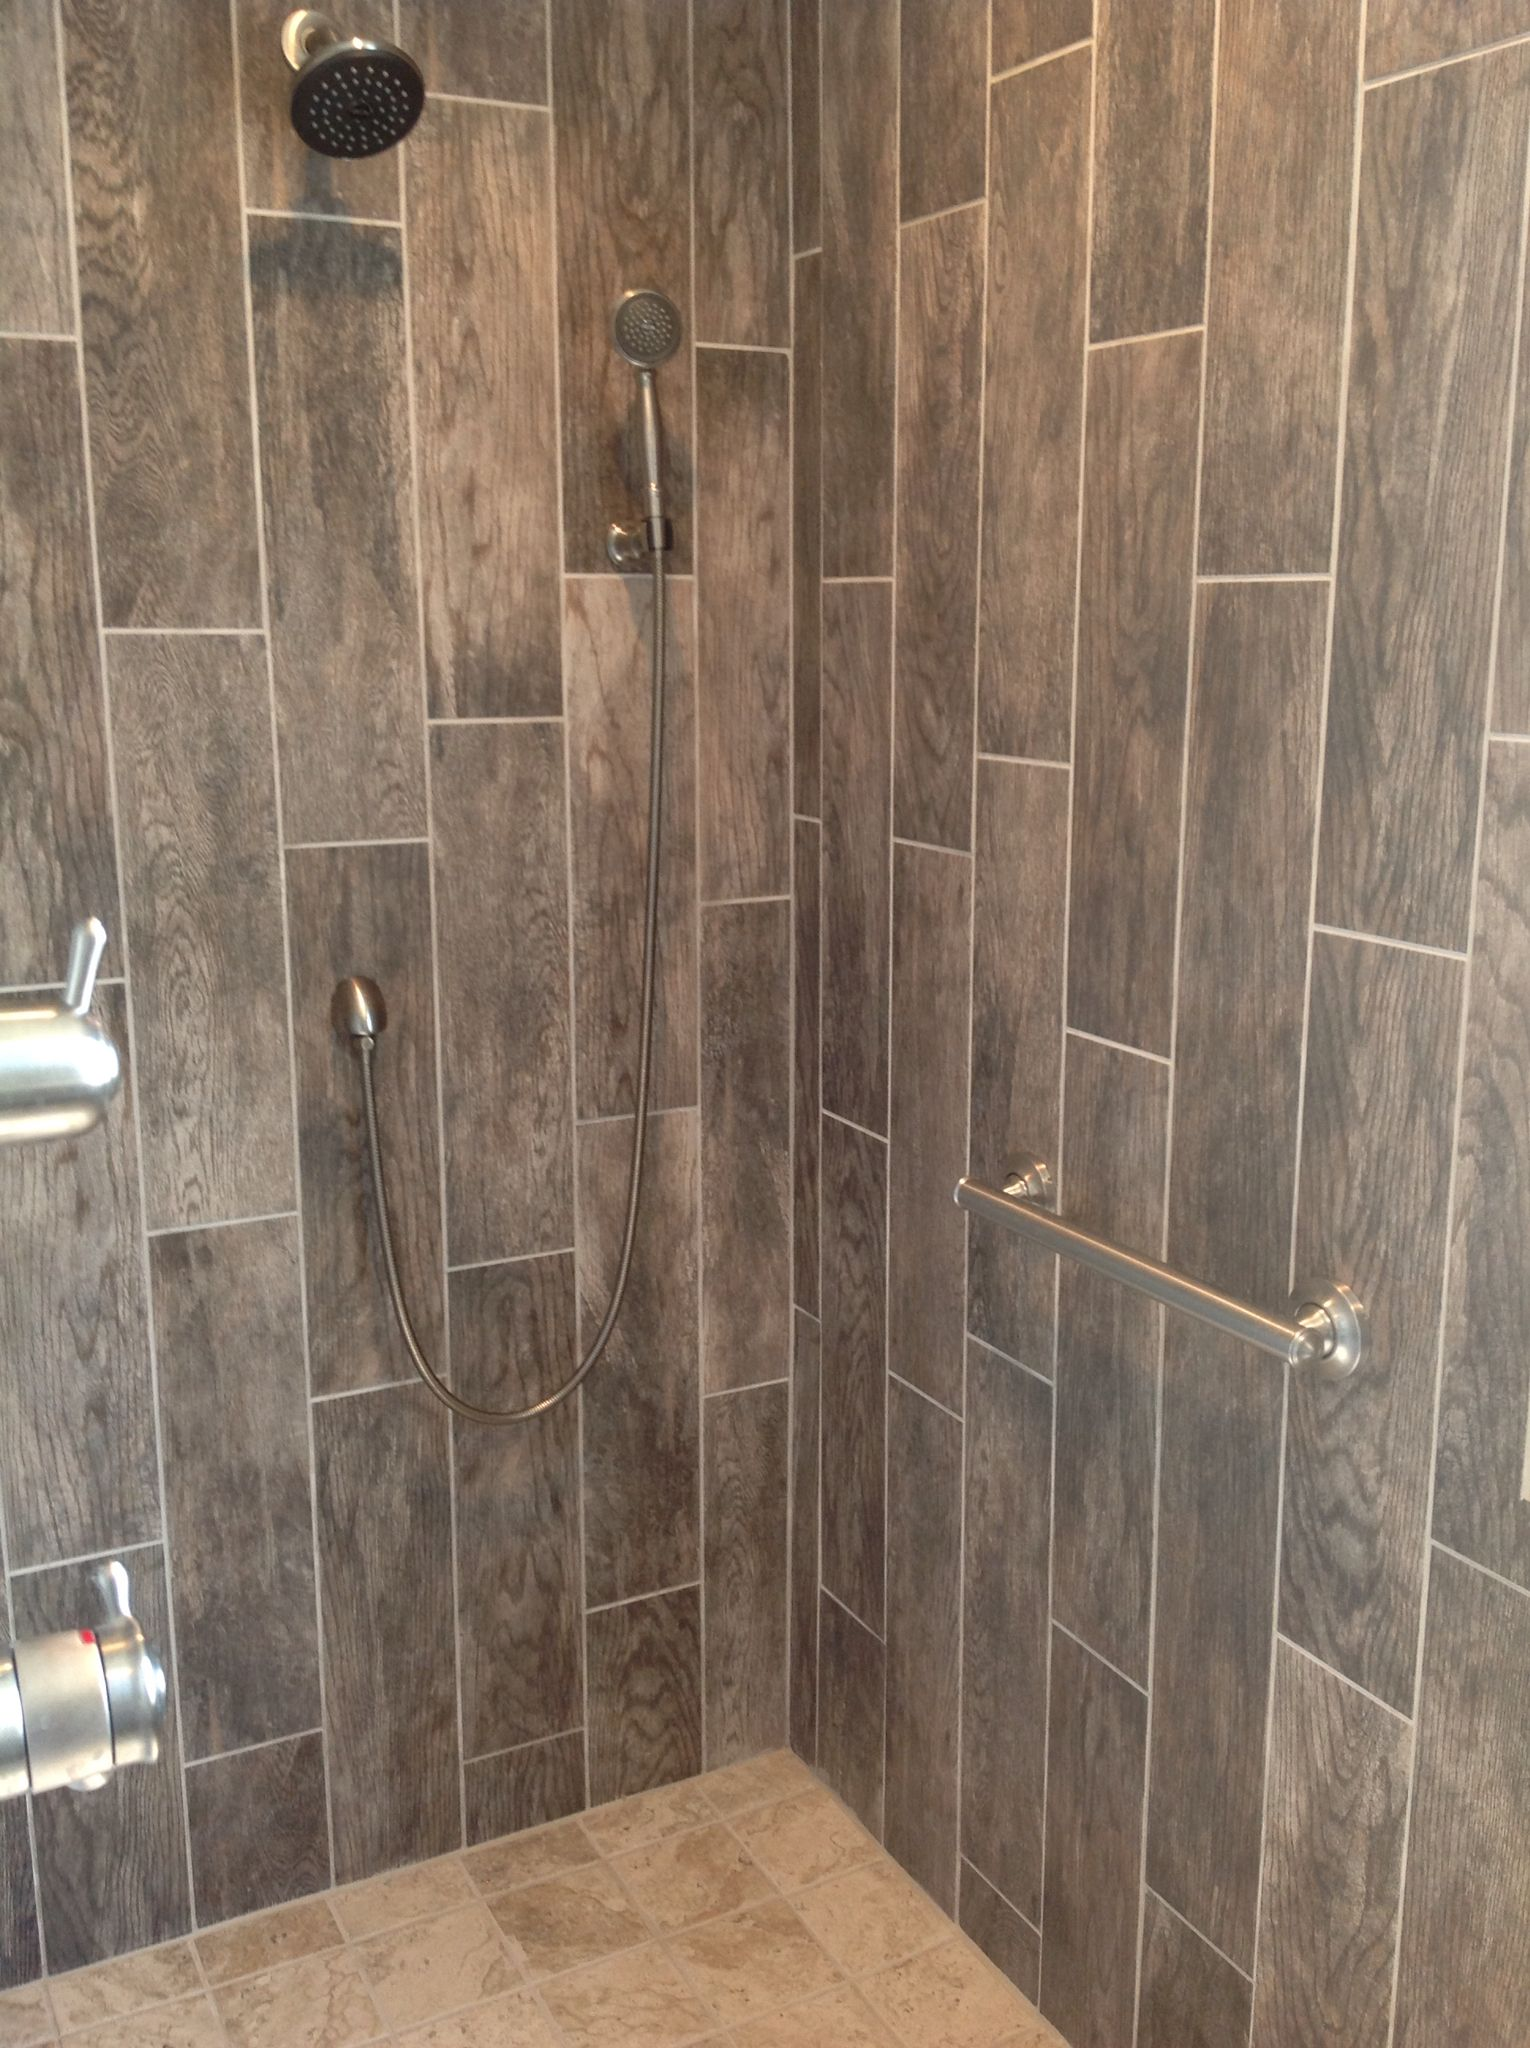 Wood Tile Bathroom Try Wood Look Tile On Your Shower Walls In A Random